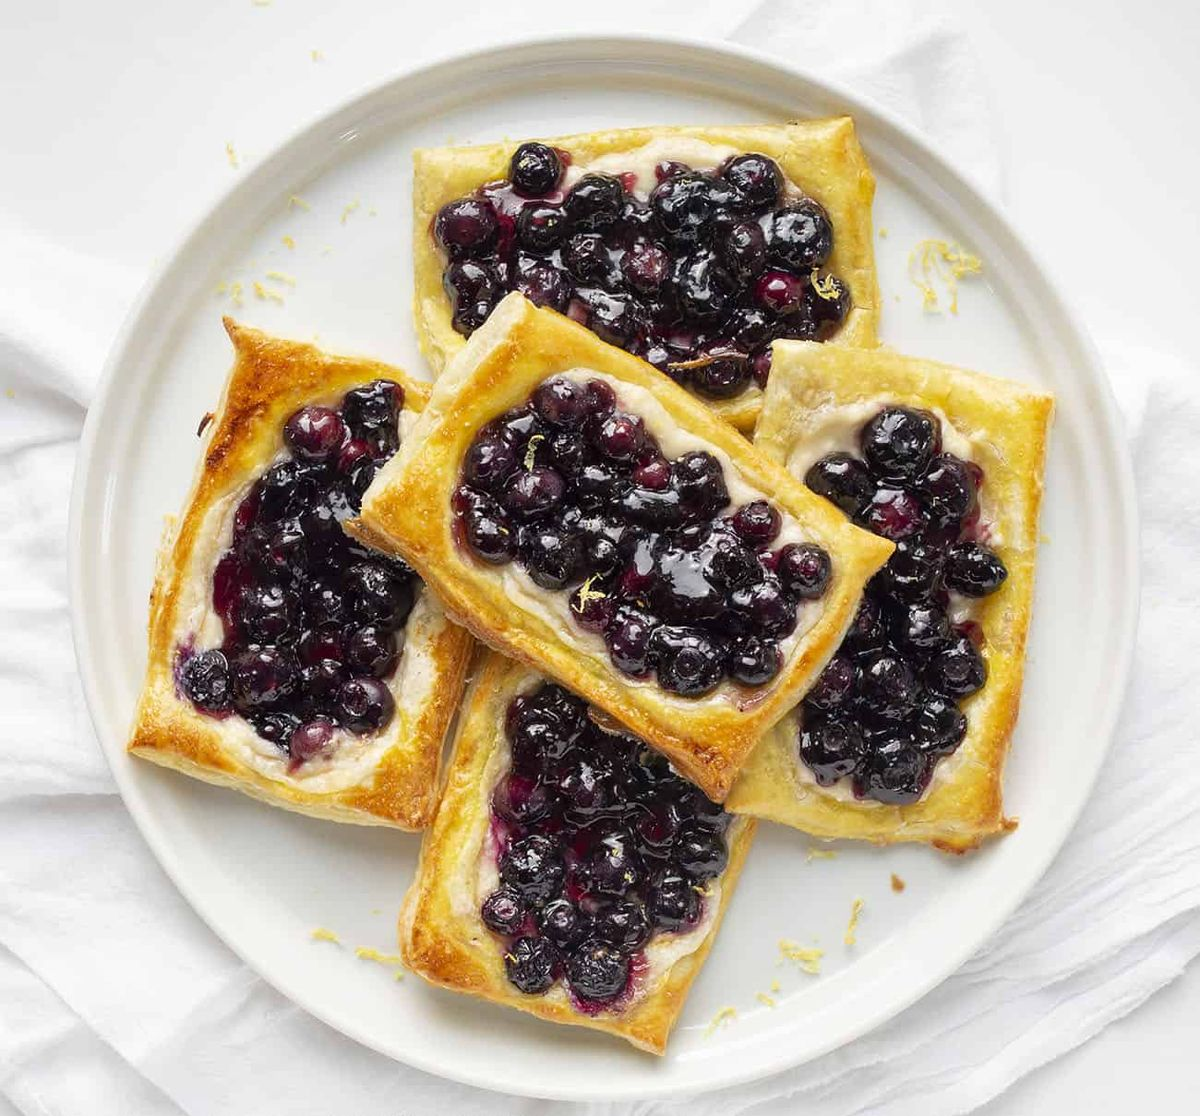 This Lemon Blueberry Danish is a light and fluffy pastry topped with a cream cheese mixture, blueberry jam, and fresh blueberries.